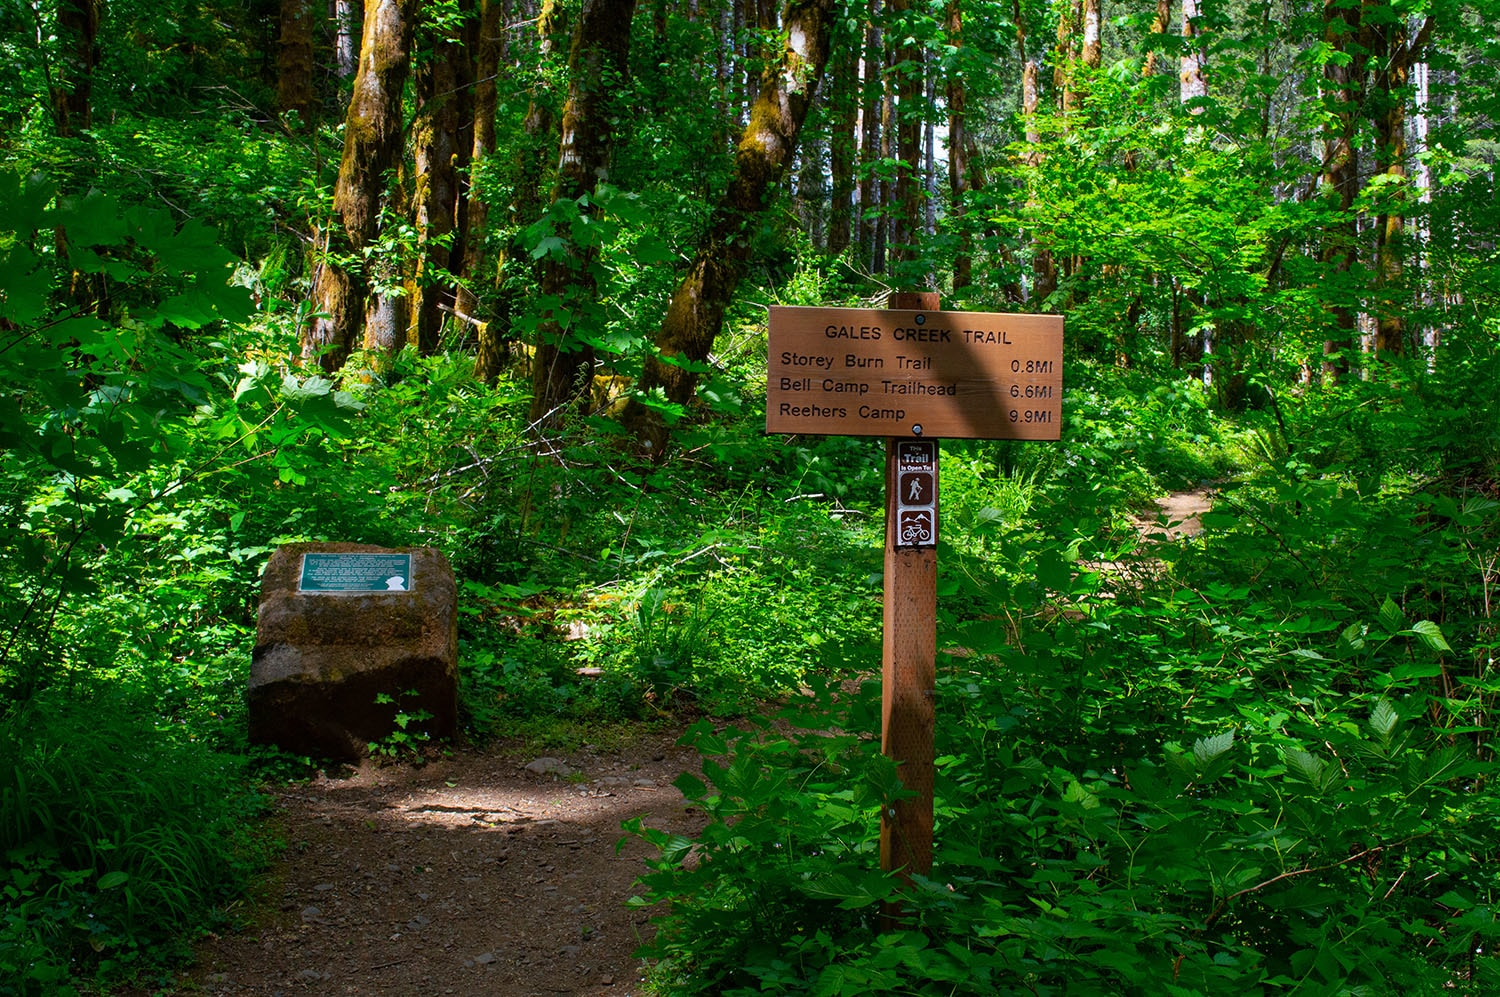 Gales Creek Trailhead